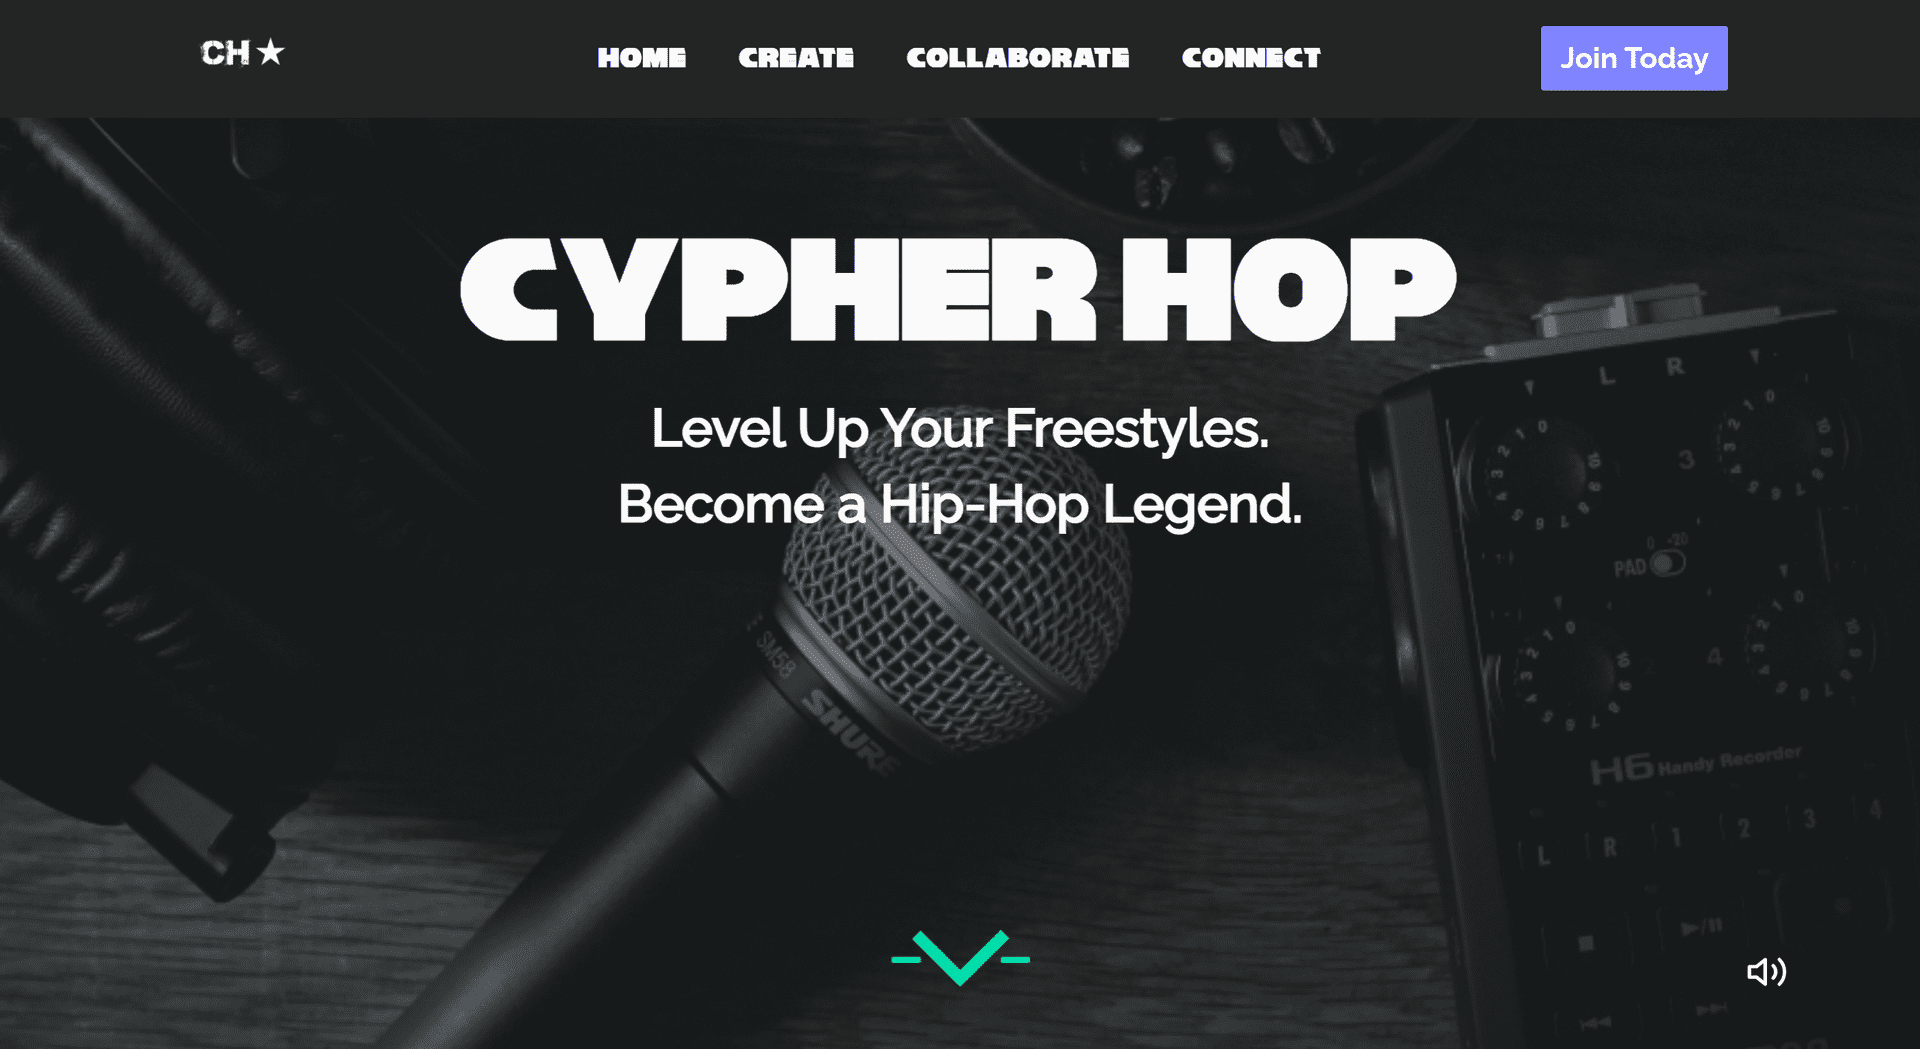 Cypher Hop Application Homepage